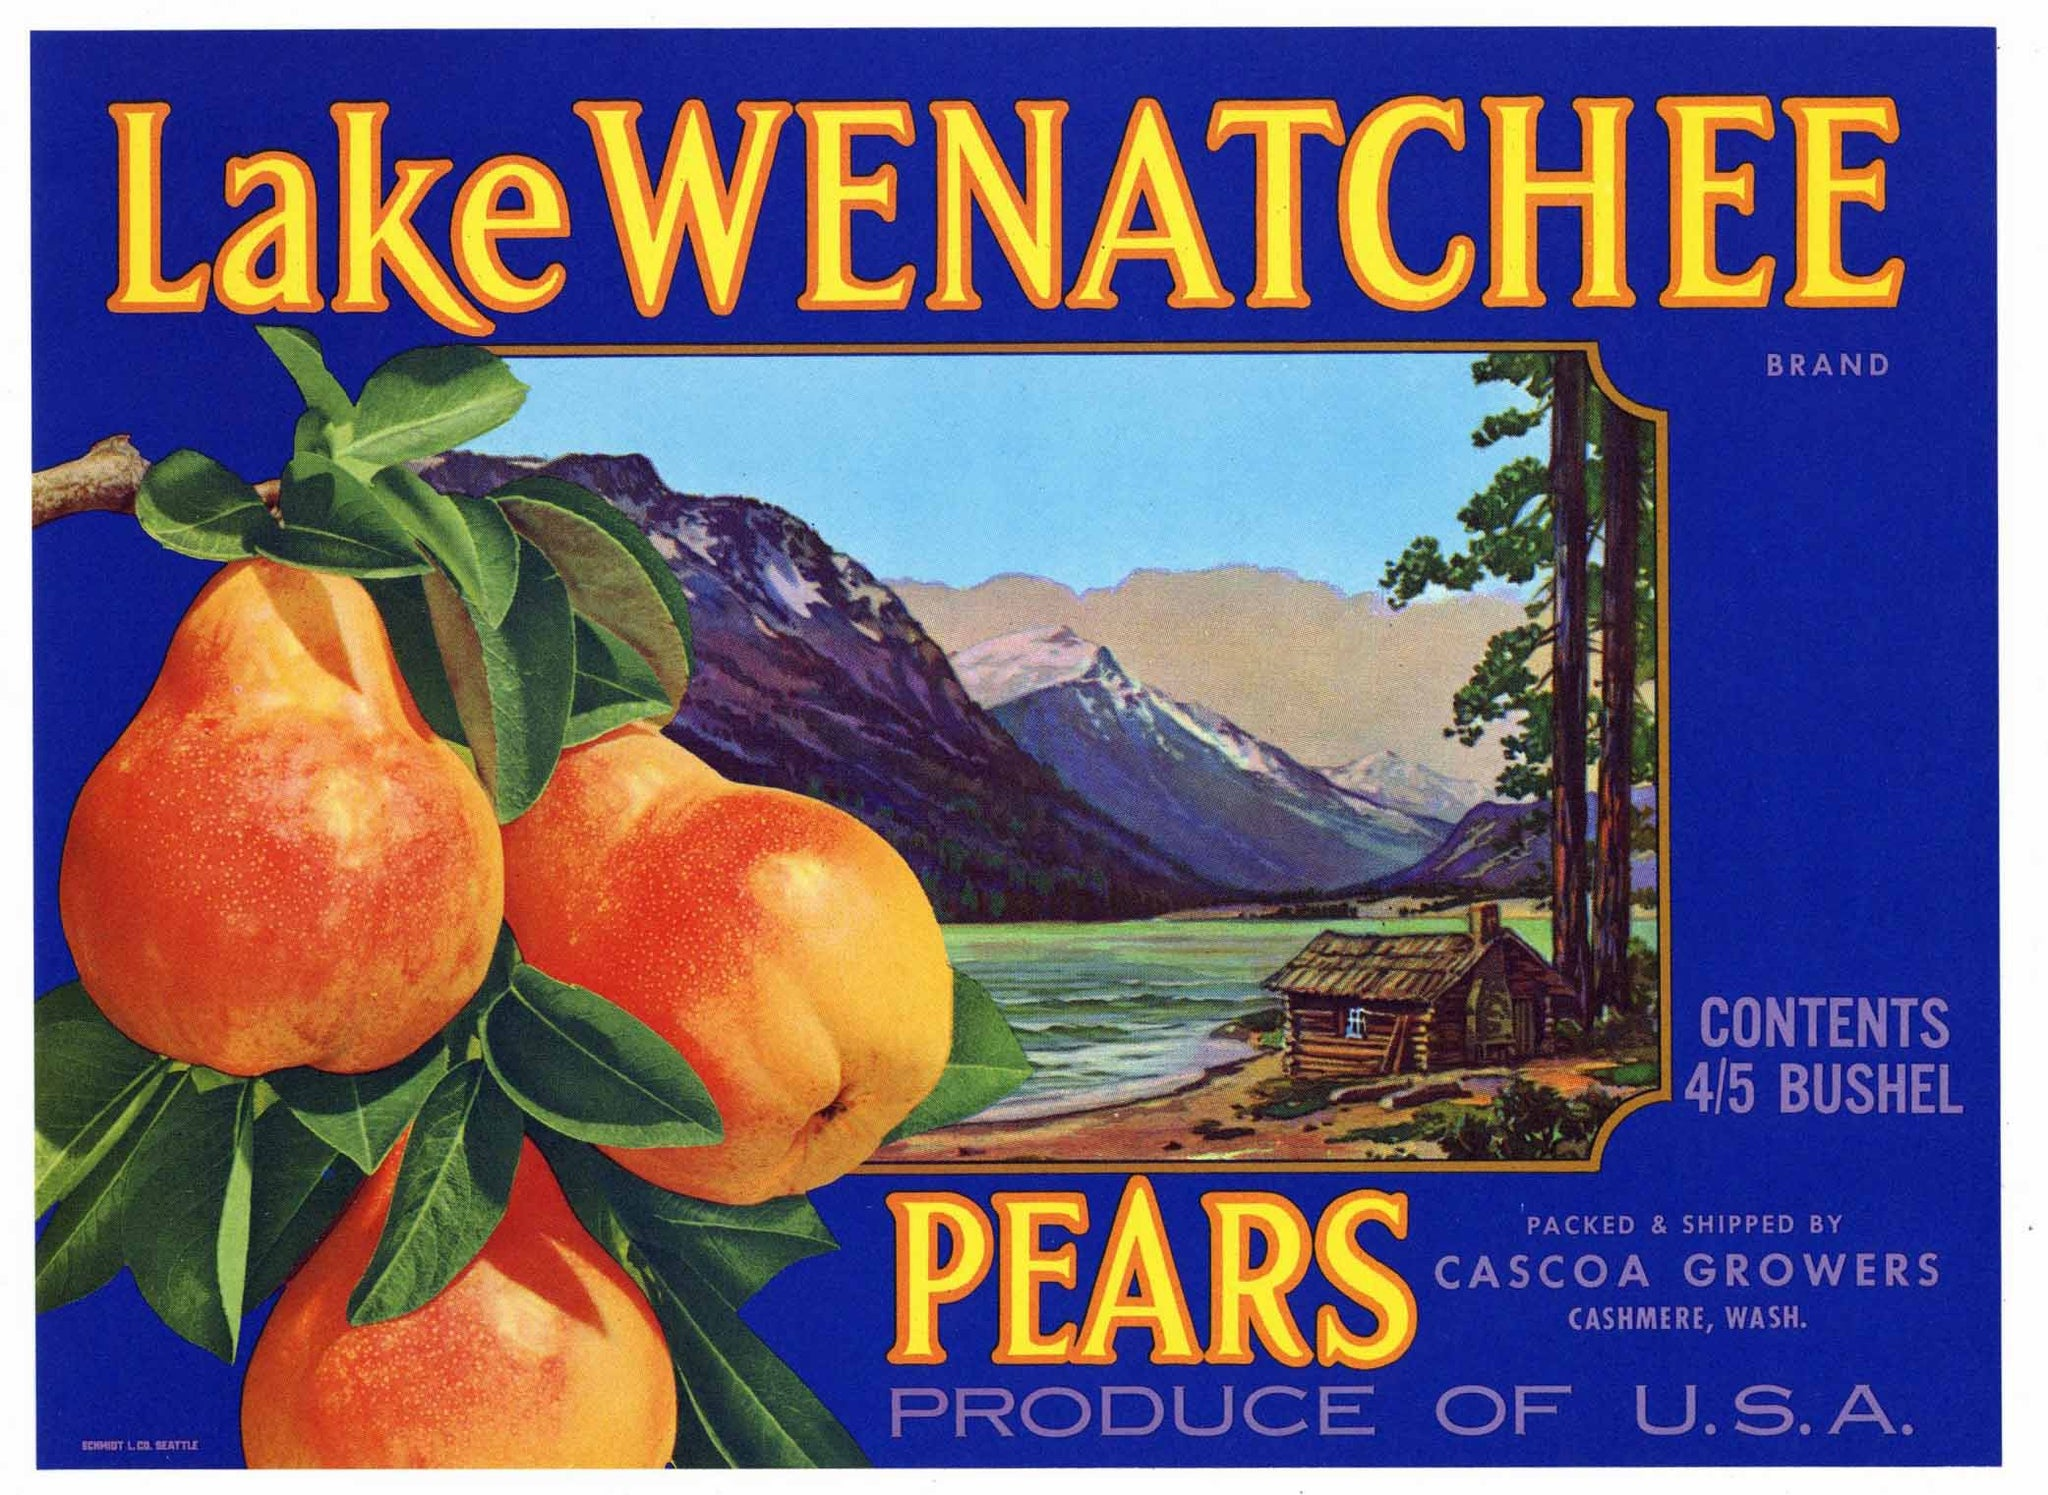 Lake Wenatchee Brand Vintage Cashmere Washington Pear Crate Label, blue